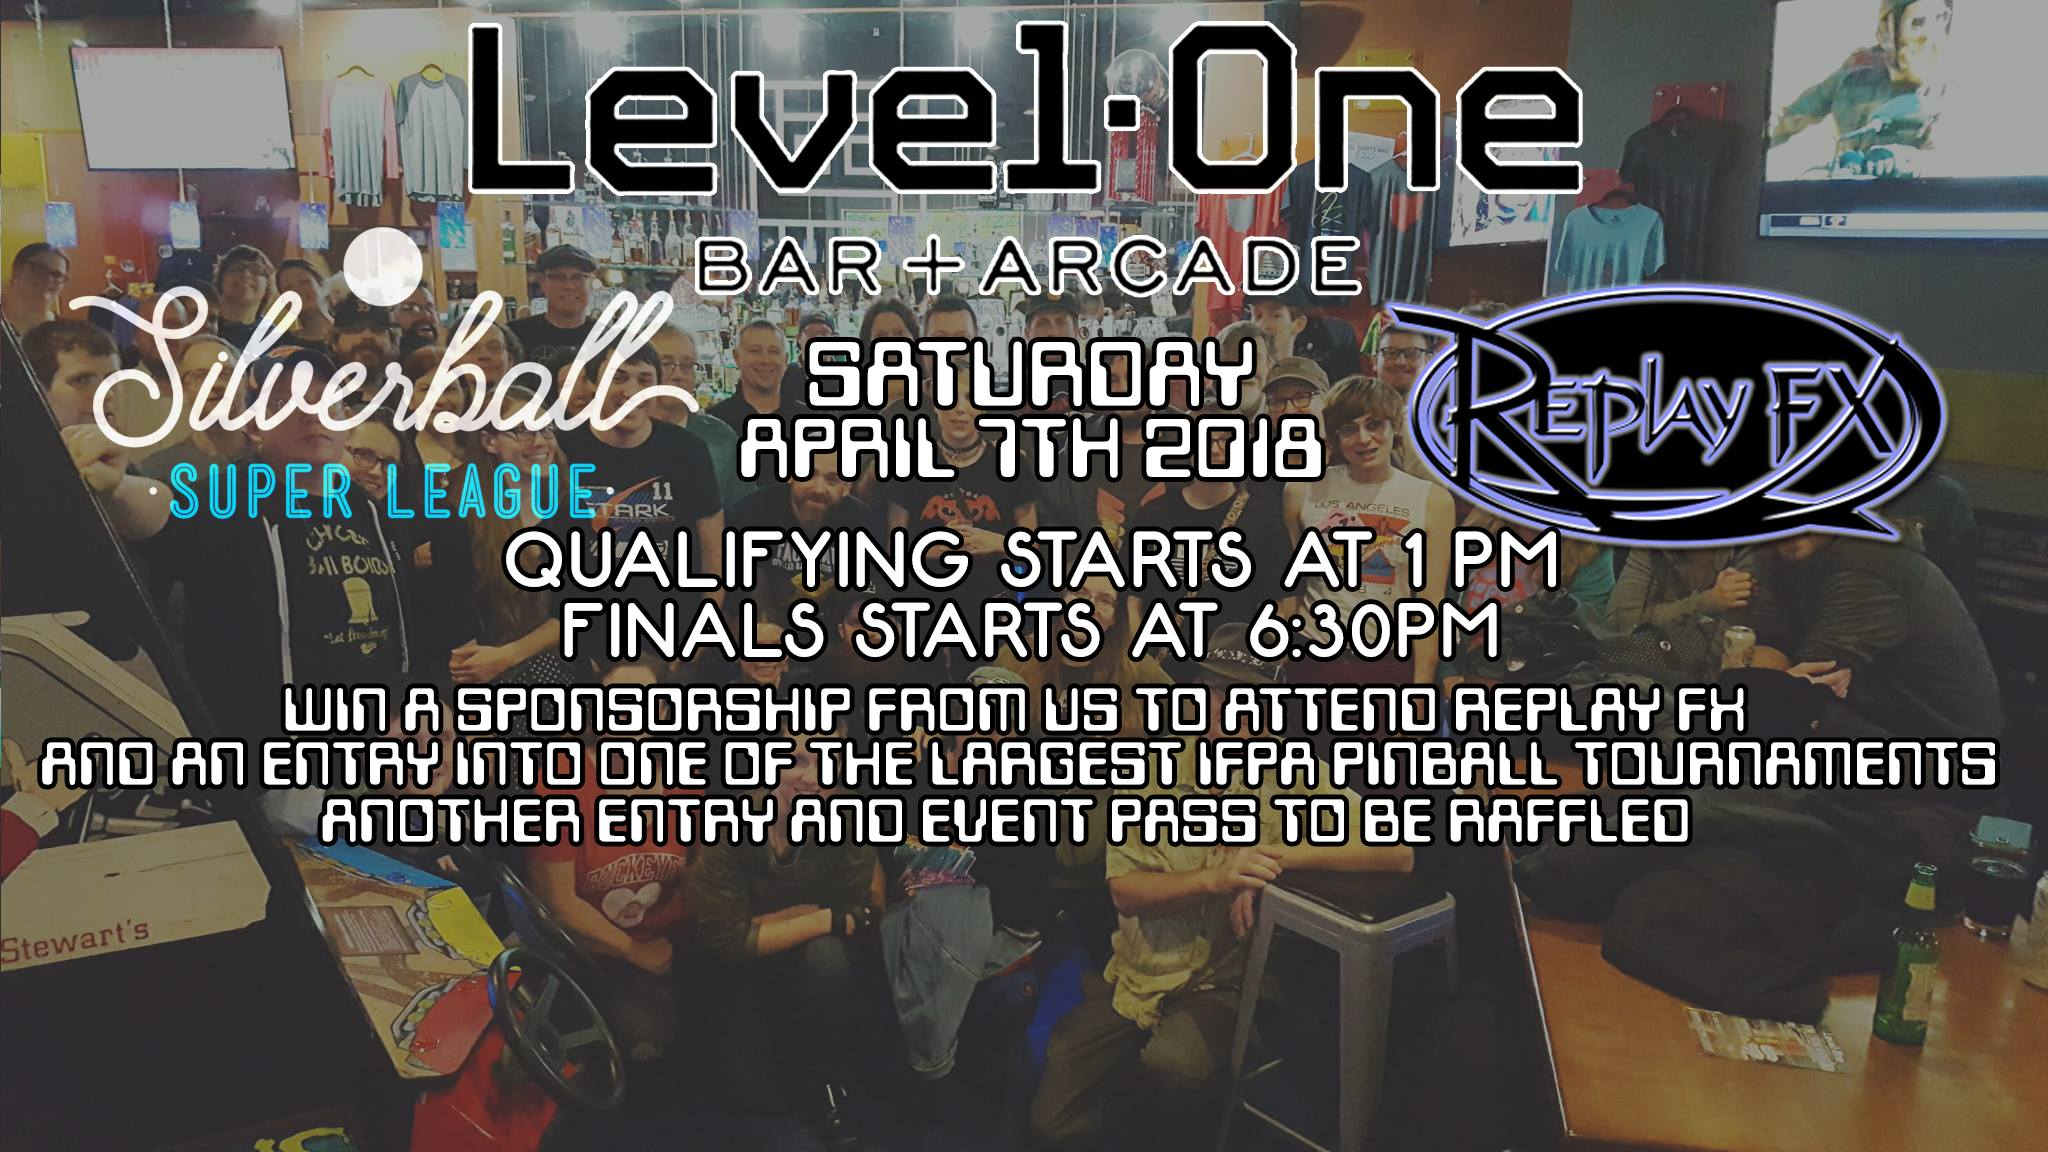 Pinburgh Tickets! Level One Bar and Arcade to give away two tickets to the competition and ReplayFX!